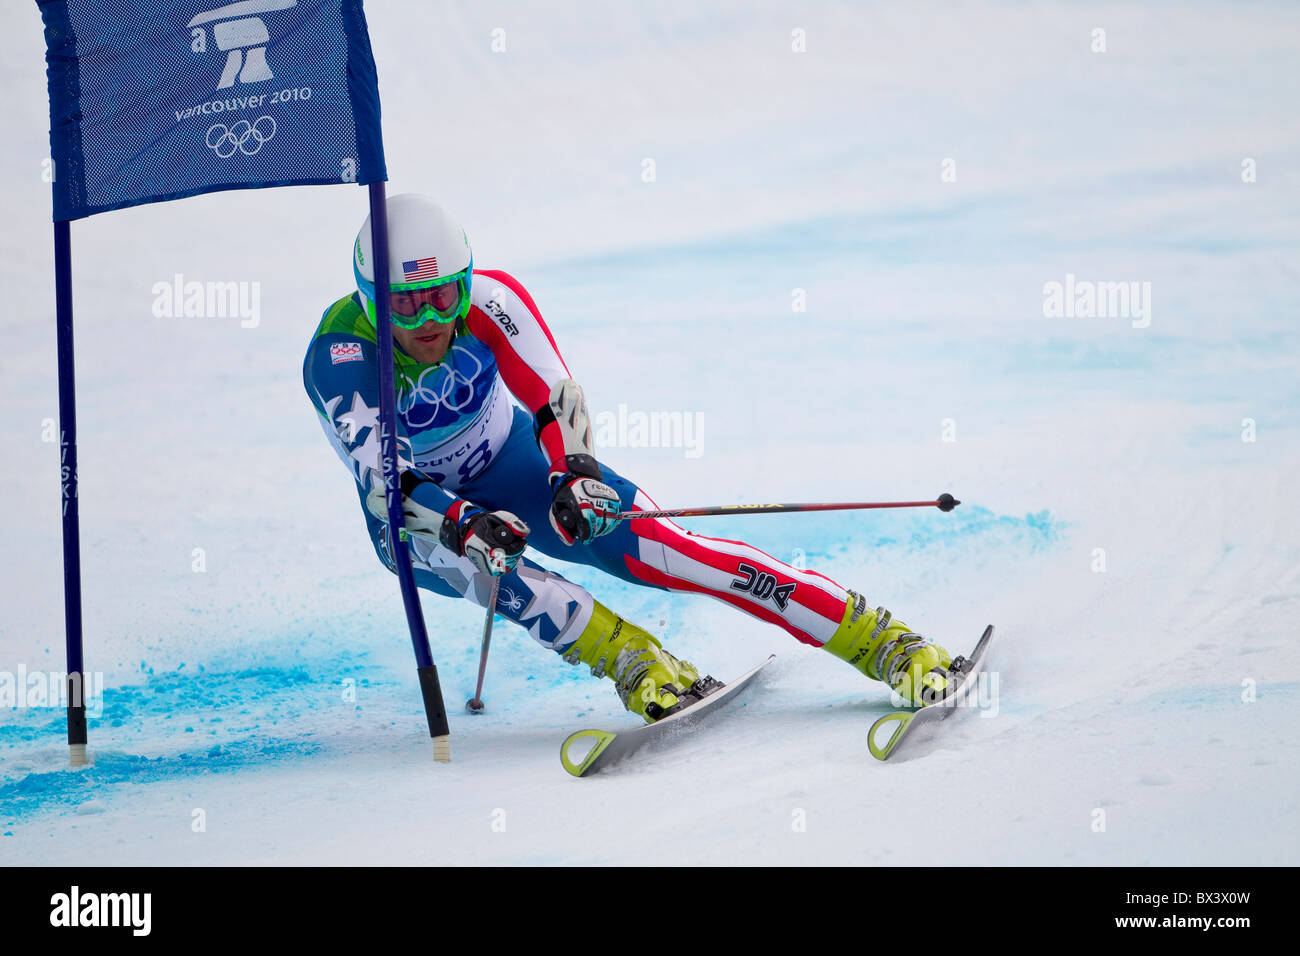 2010 Vancouver Winter Olympics; Mens Giant Slalom; Jake Zamansky (USA) Stock Photo